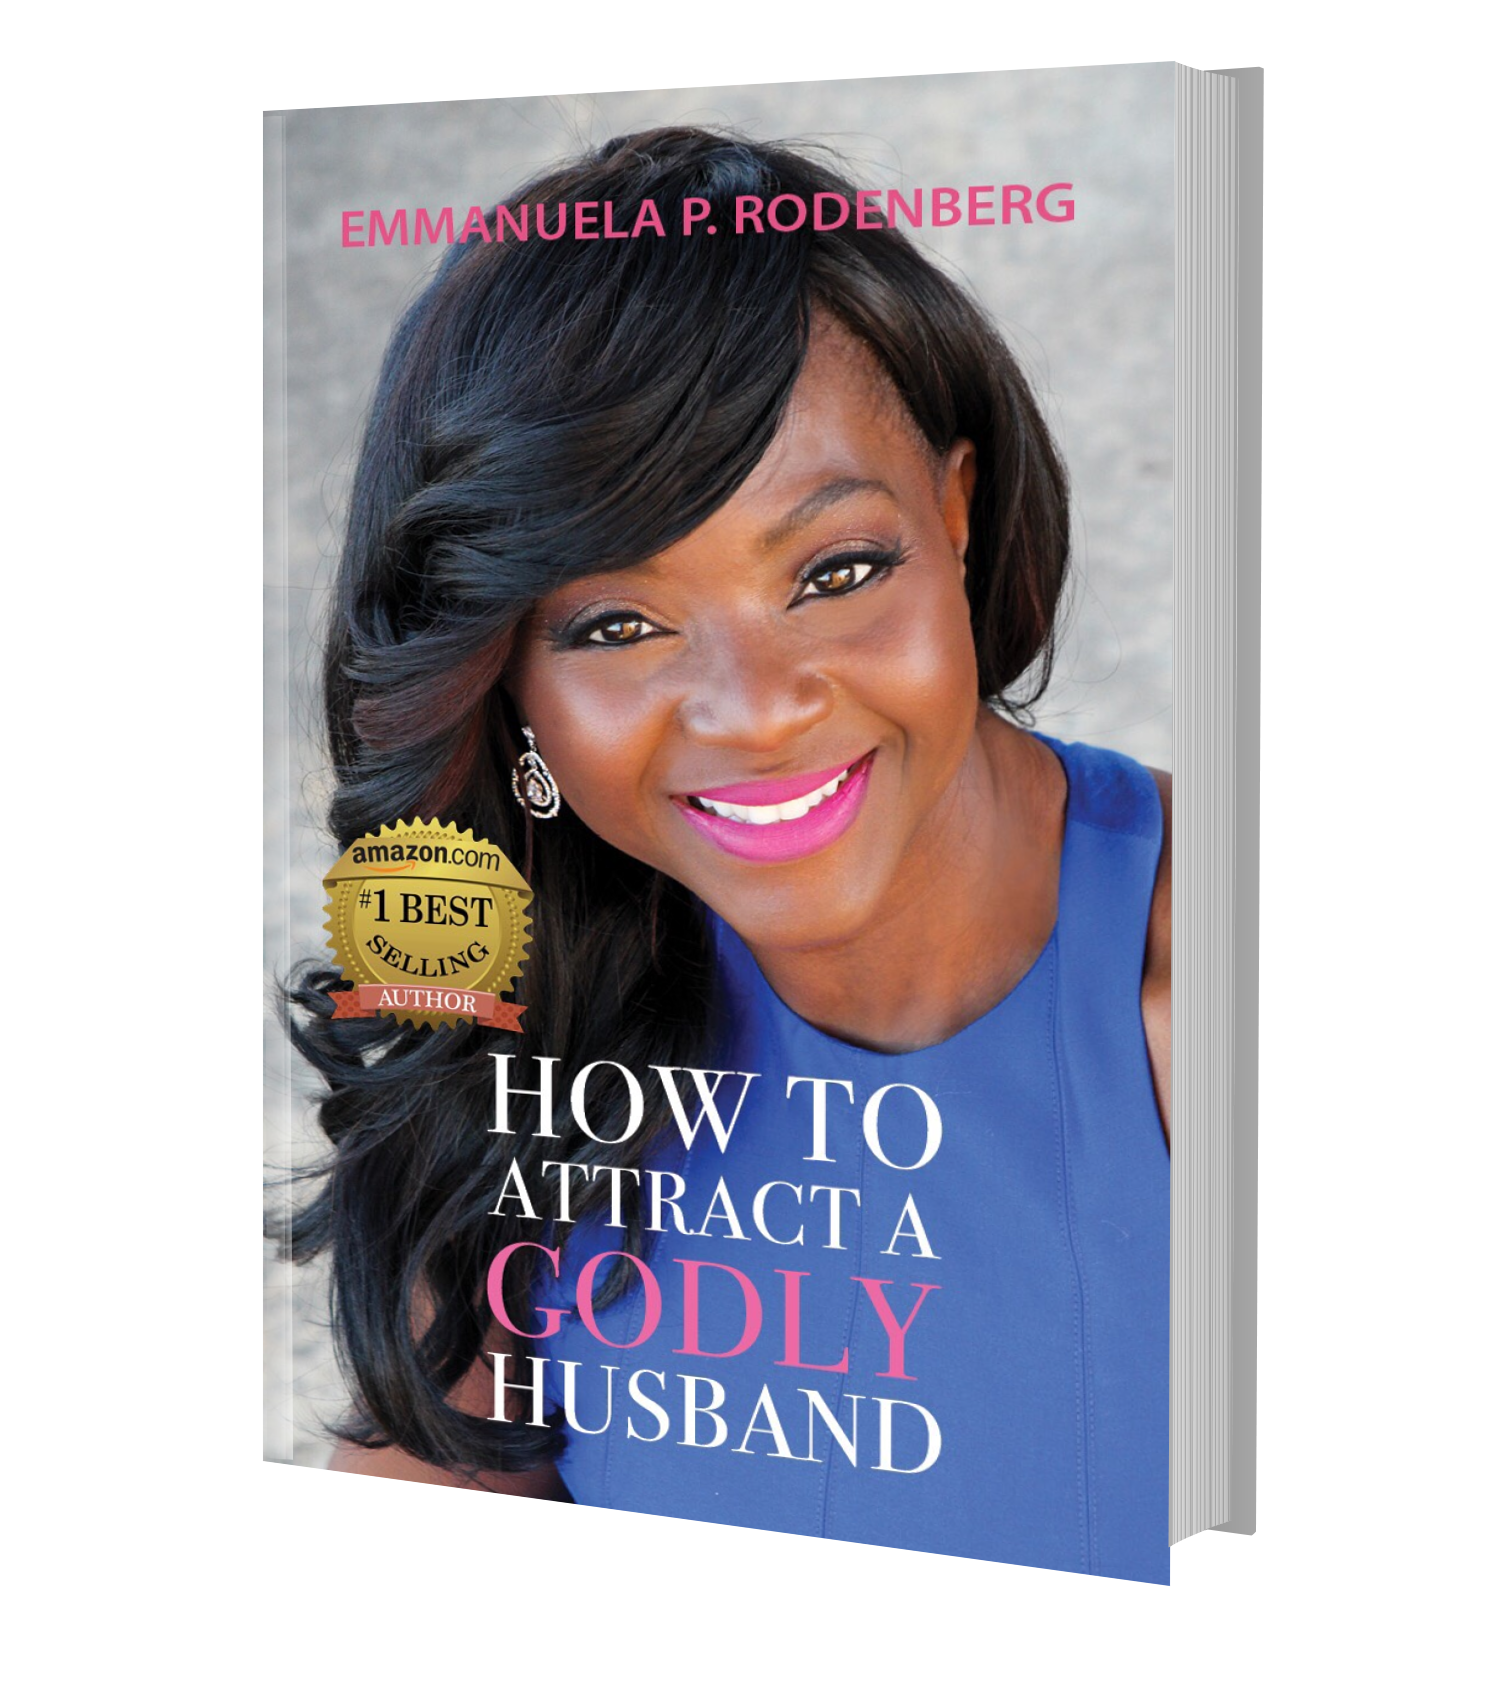 "HOW TO ATTRACT A GODLY HUSBAND - ""How to Attract a Godly Husband"" is a must read! It has practical advice about how to approach relationships and offers its readers an opportunity to reflect upon their actions and adjust accordingly. Emmanuela is insightful about today's dating scene and helps women to maneuver the pitfalls"